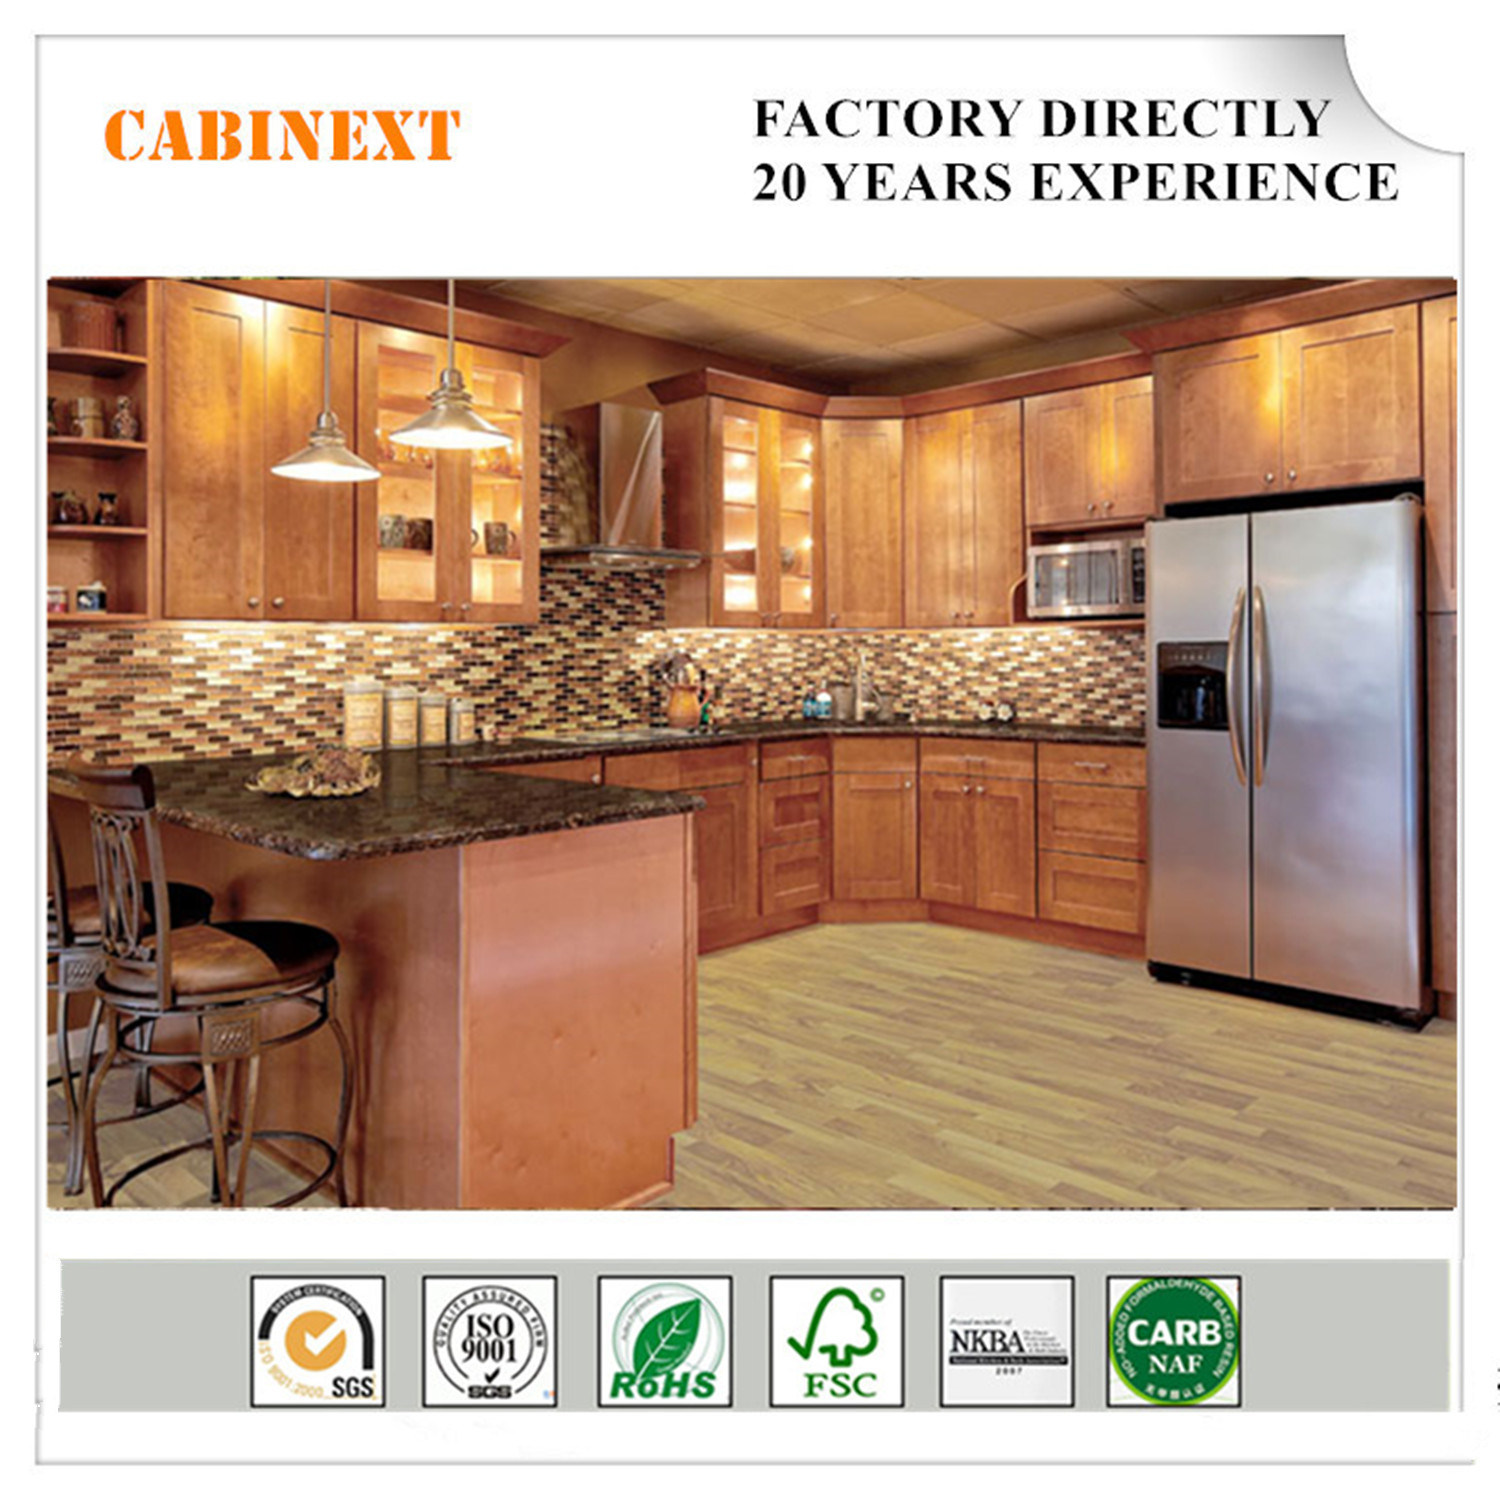 China Morden Furniture Kitchen Cabinets Rta Solid Wood Factory ... on espresso cabinets, www.kitchen cabinets, rta entertainment cabinets, vanilla cabinets, rta kitchen design, rta kitchen islands, rta linen cabinets,